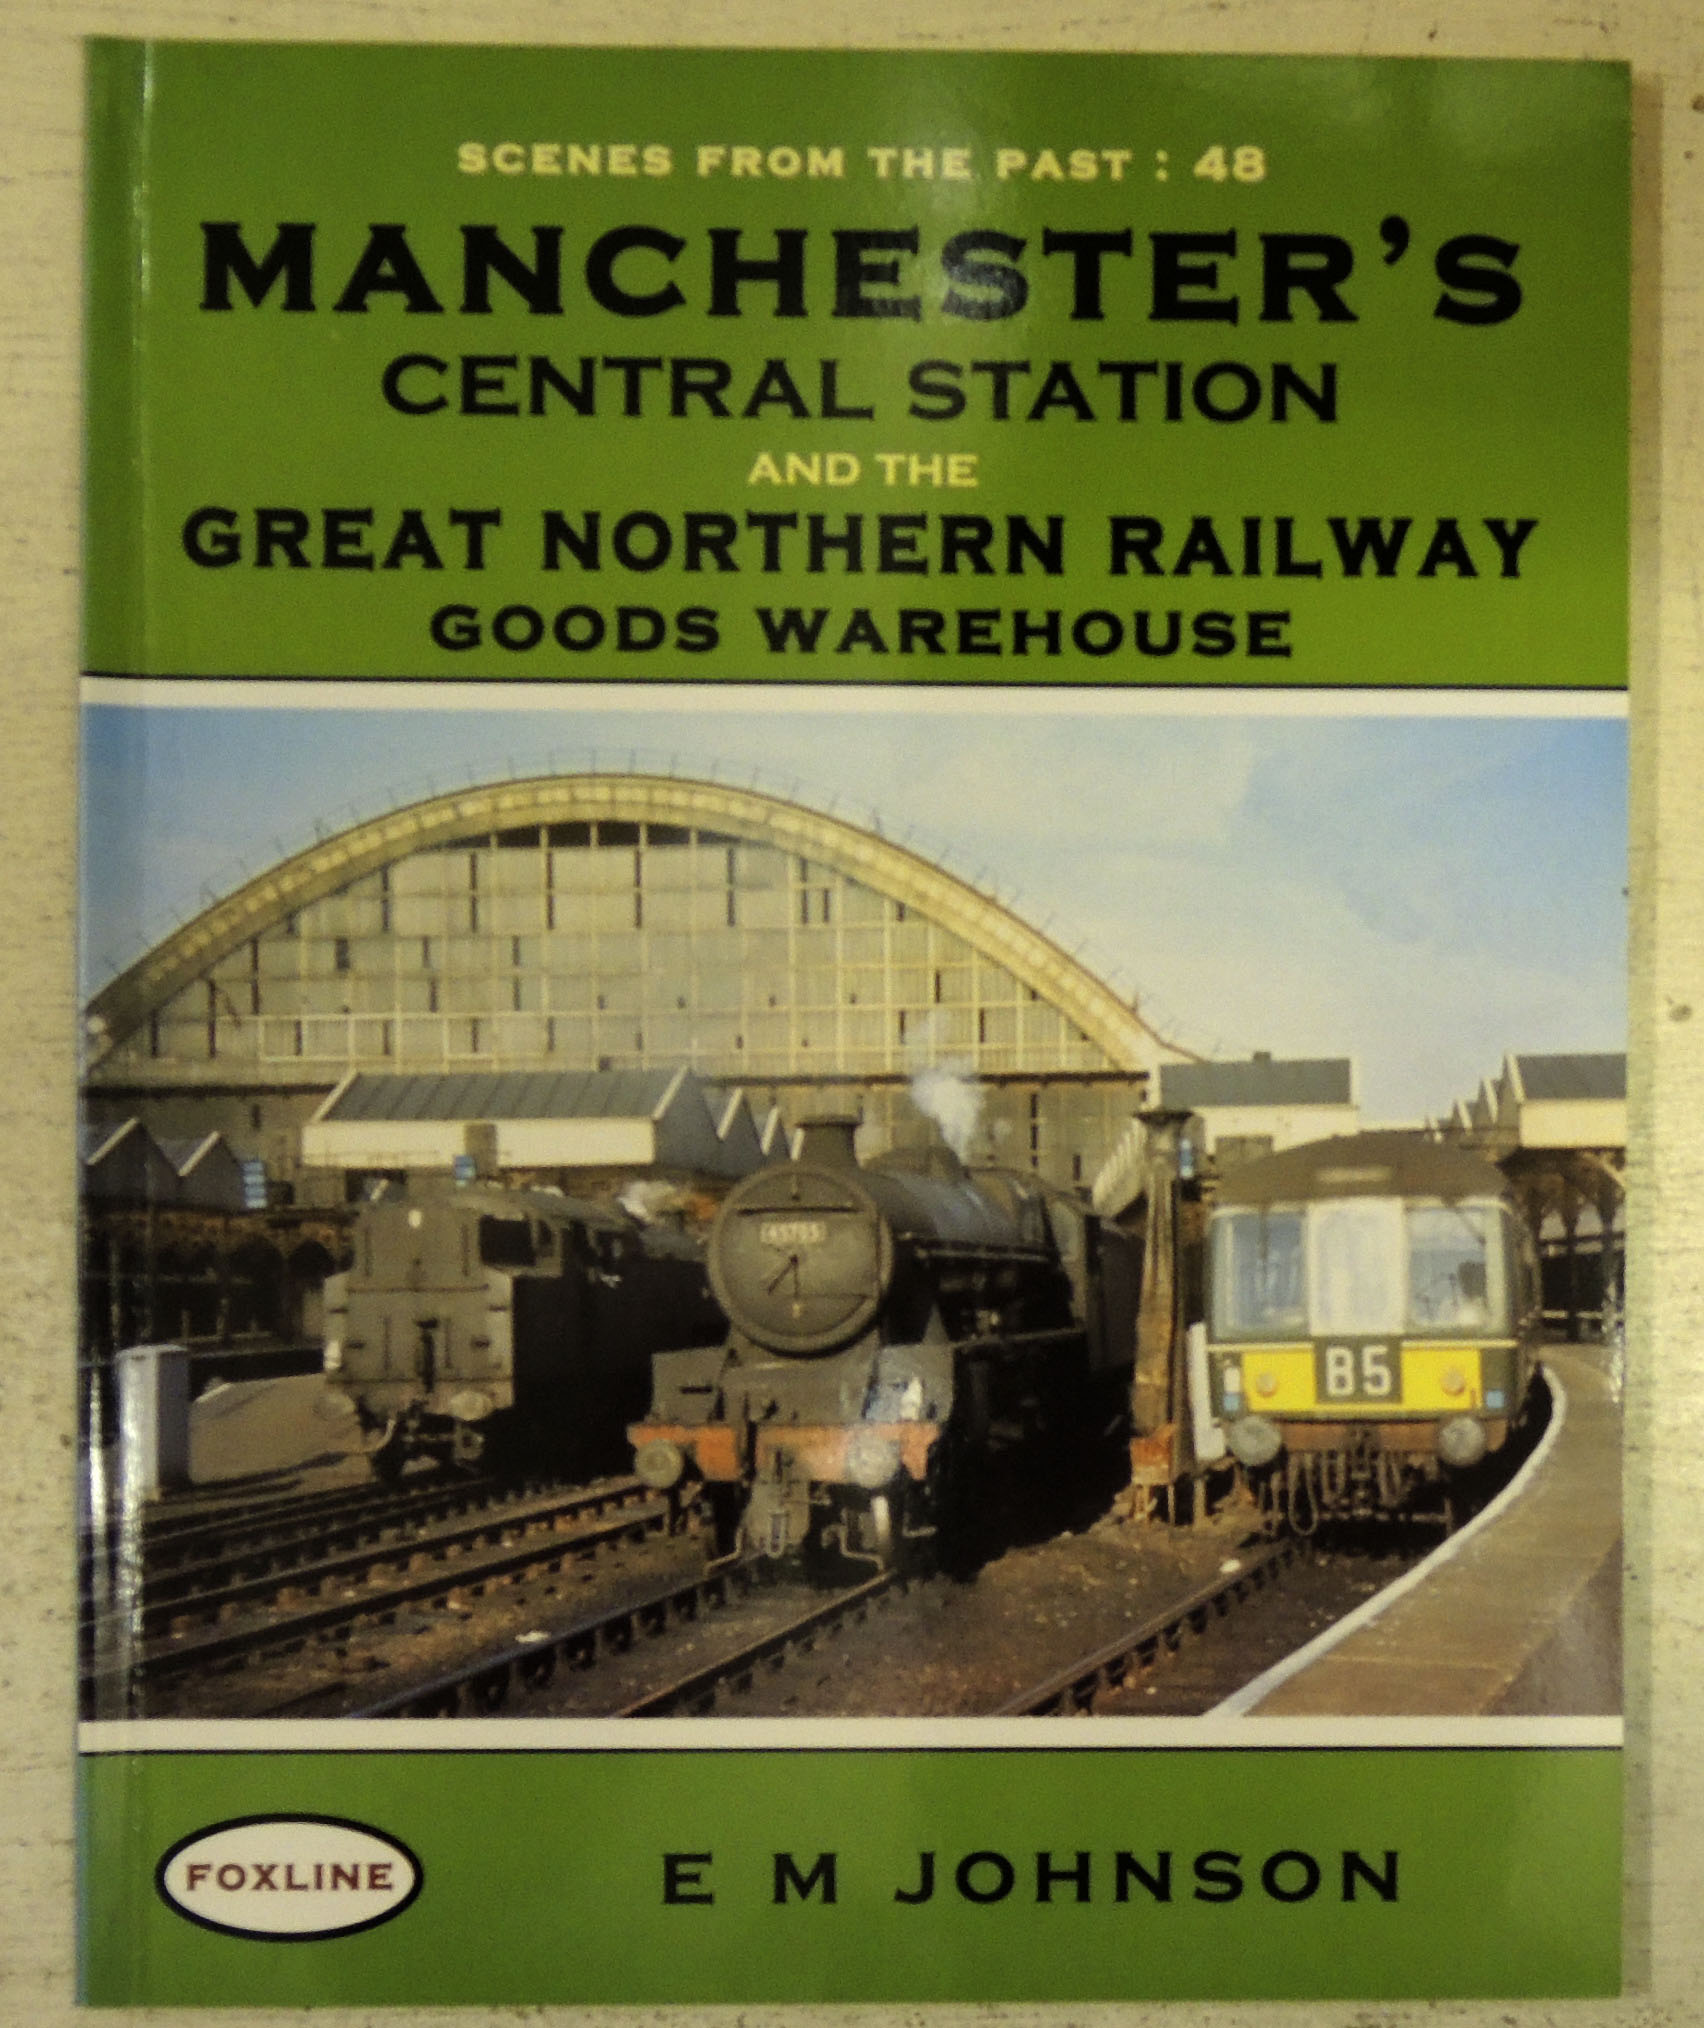 Image for Scenes from the Past 48: Manchester's Central Station and the Great Northern Railway Goods Warehouse